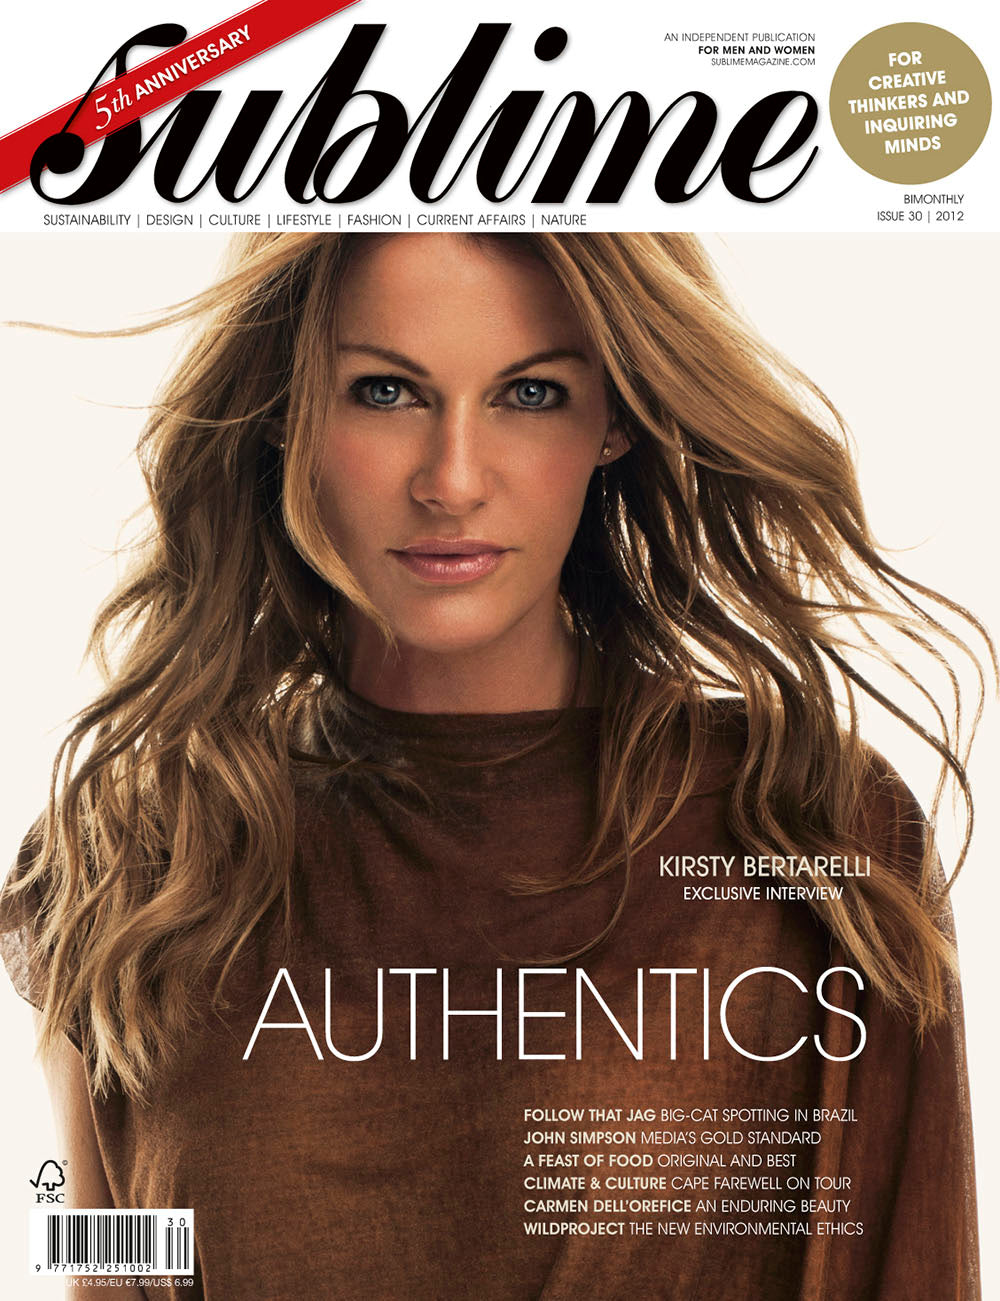 Issue 30 - Authentics